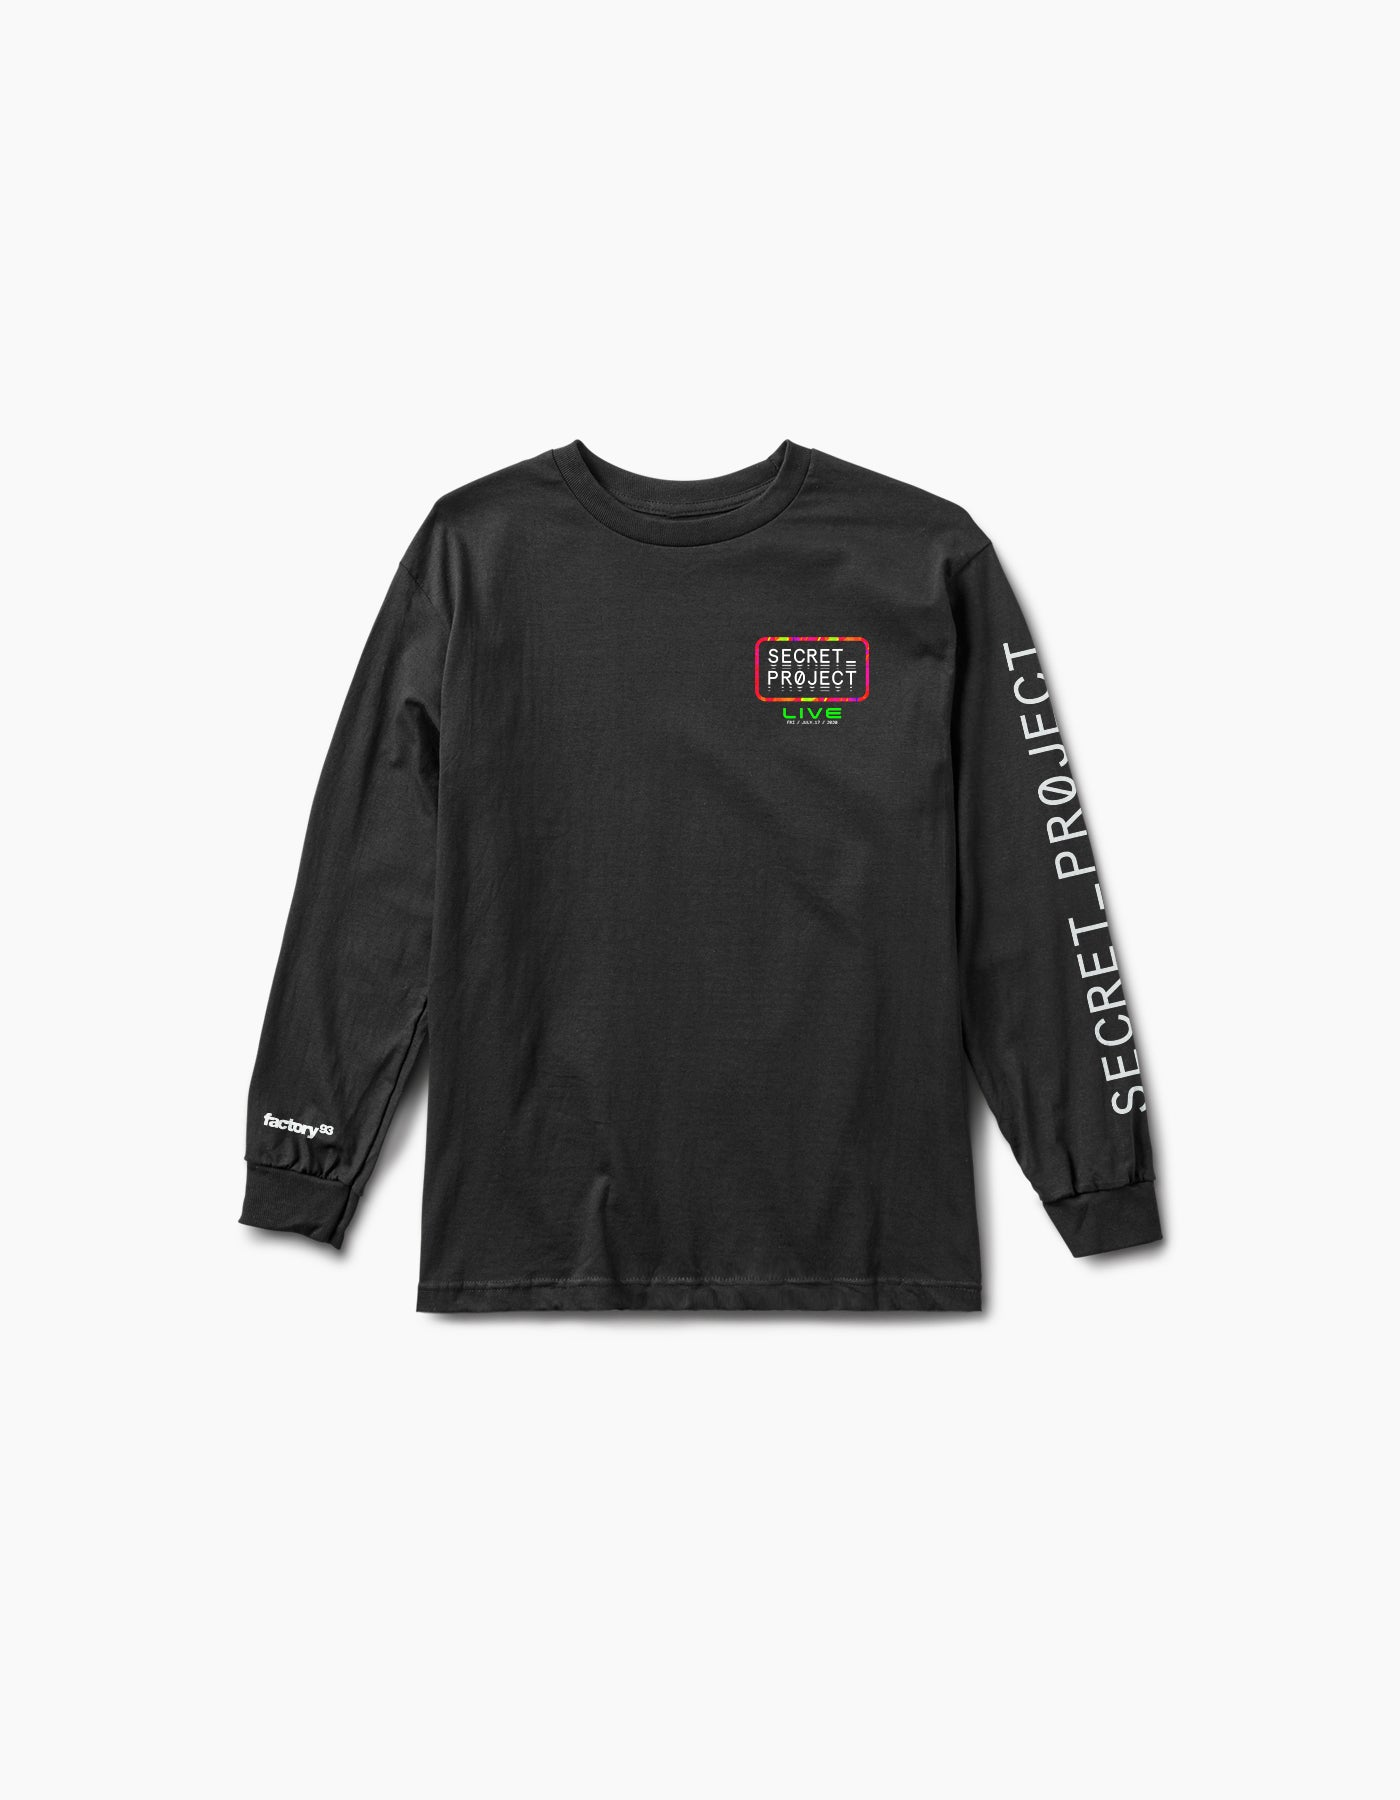 Virtual Secret Project Live L/S Tee